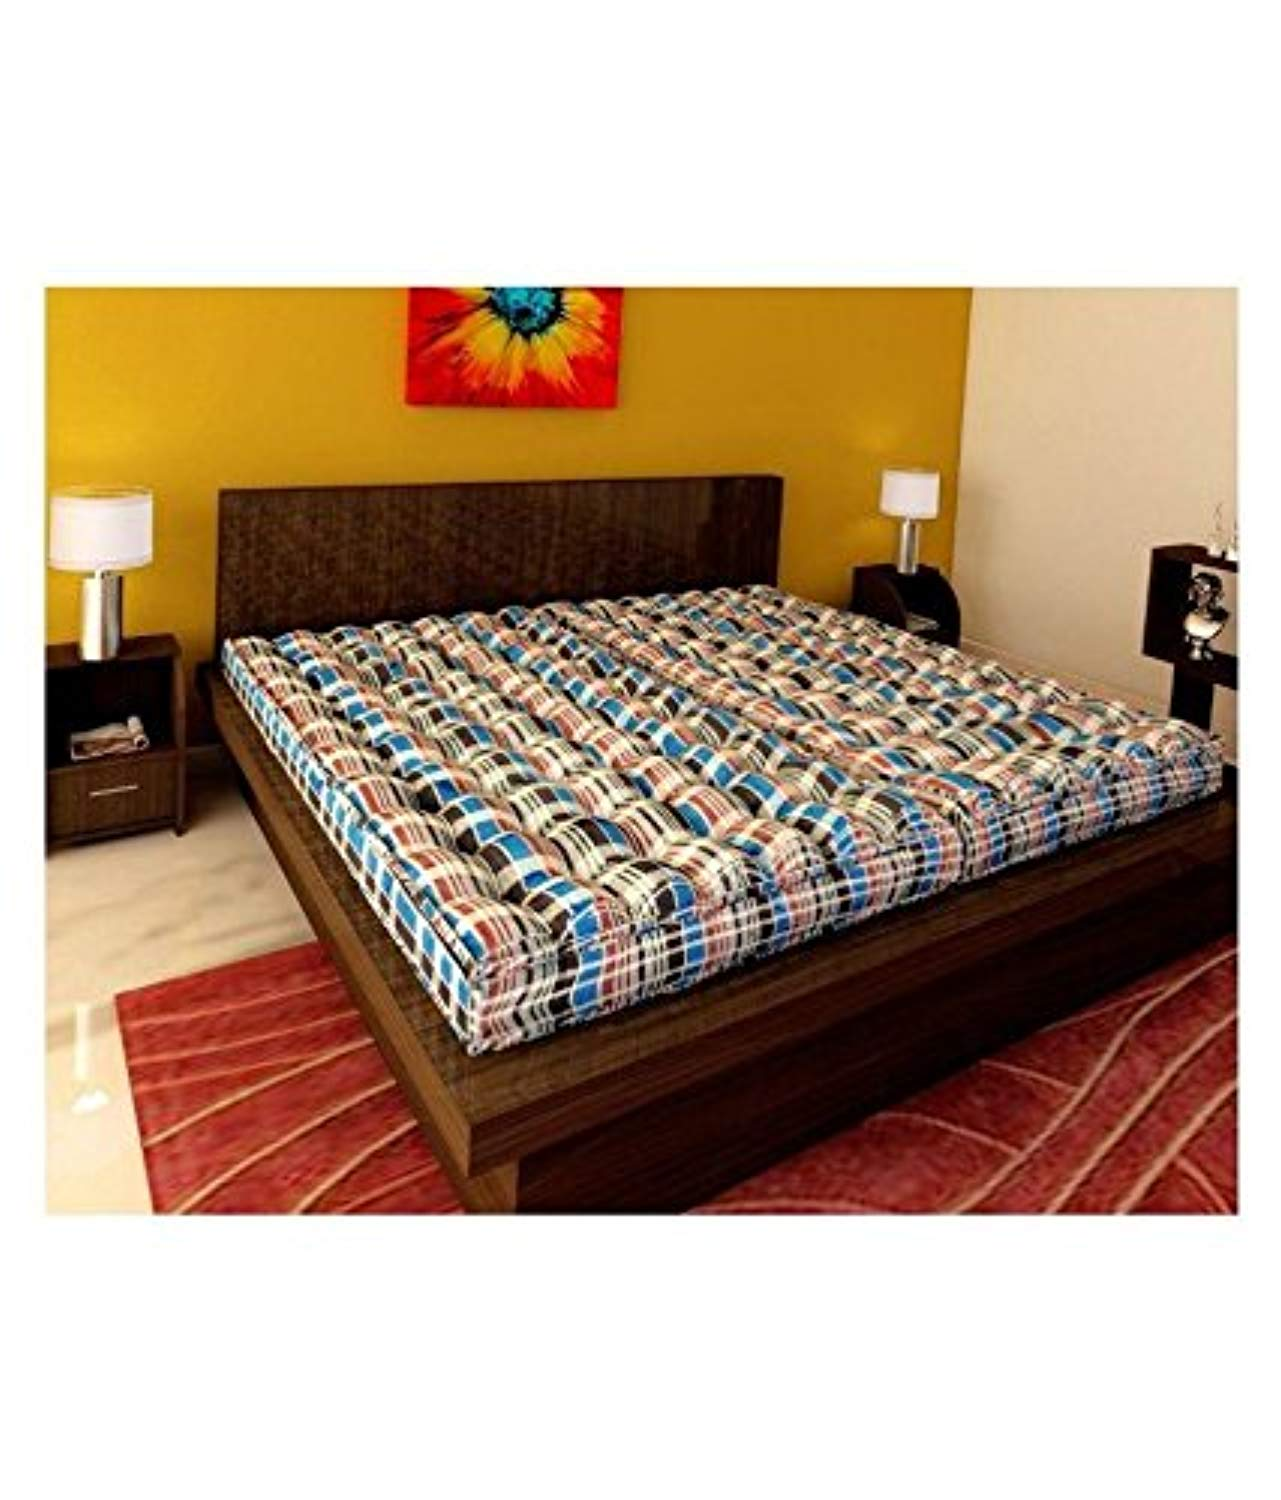 IRA Double Bed Soft cotton Mattress gadda(4 Inch) - IRA Furniture